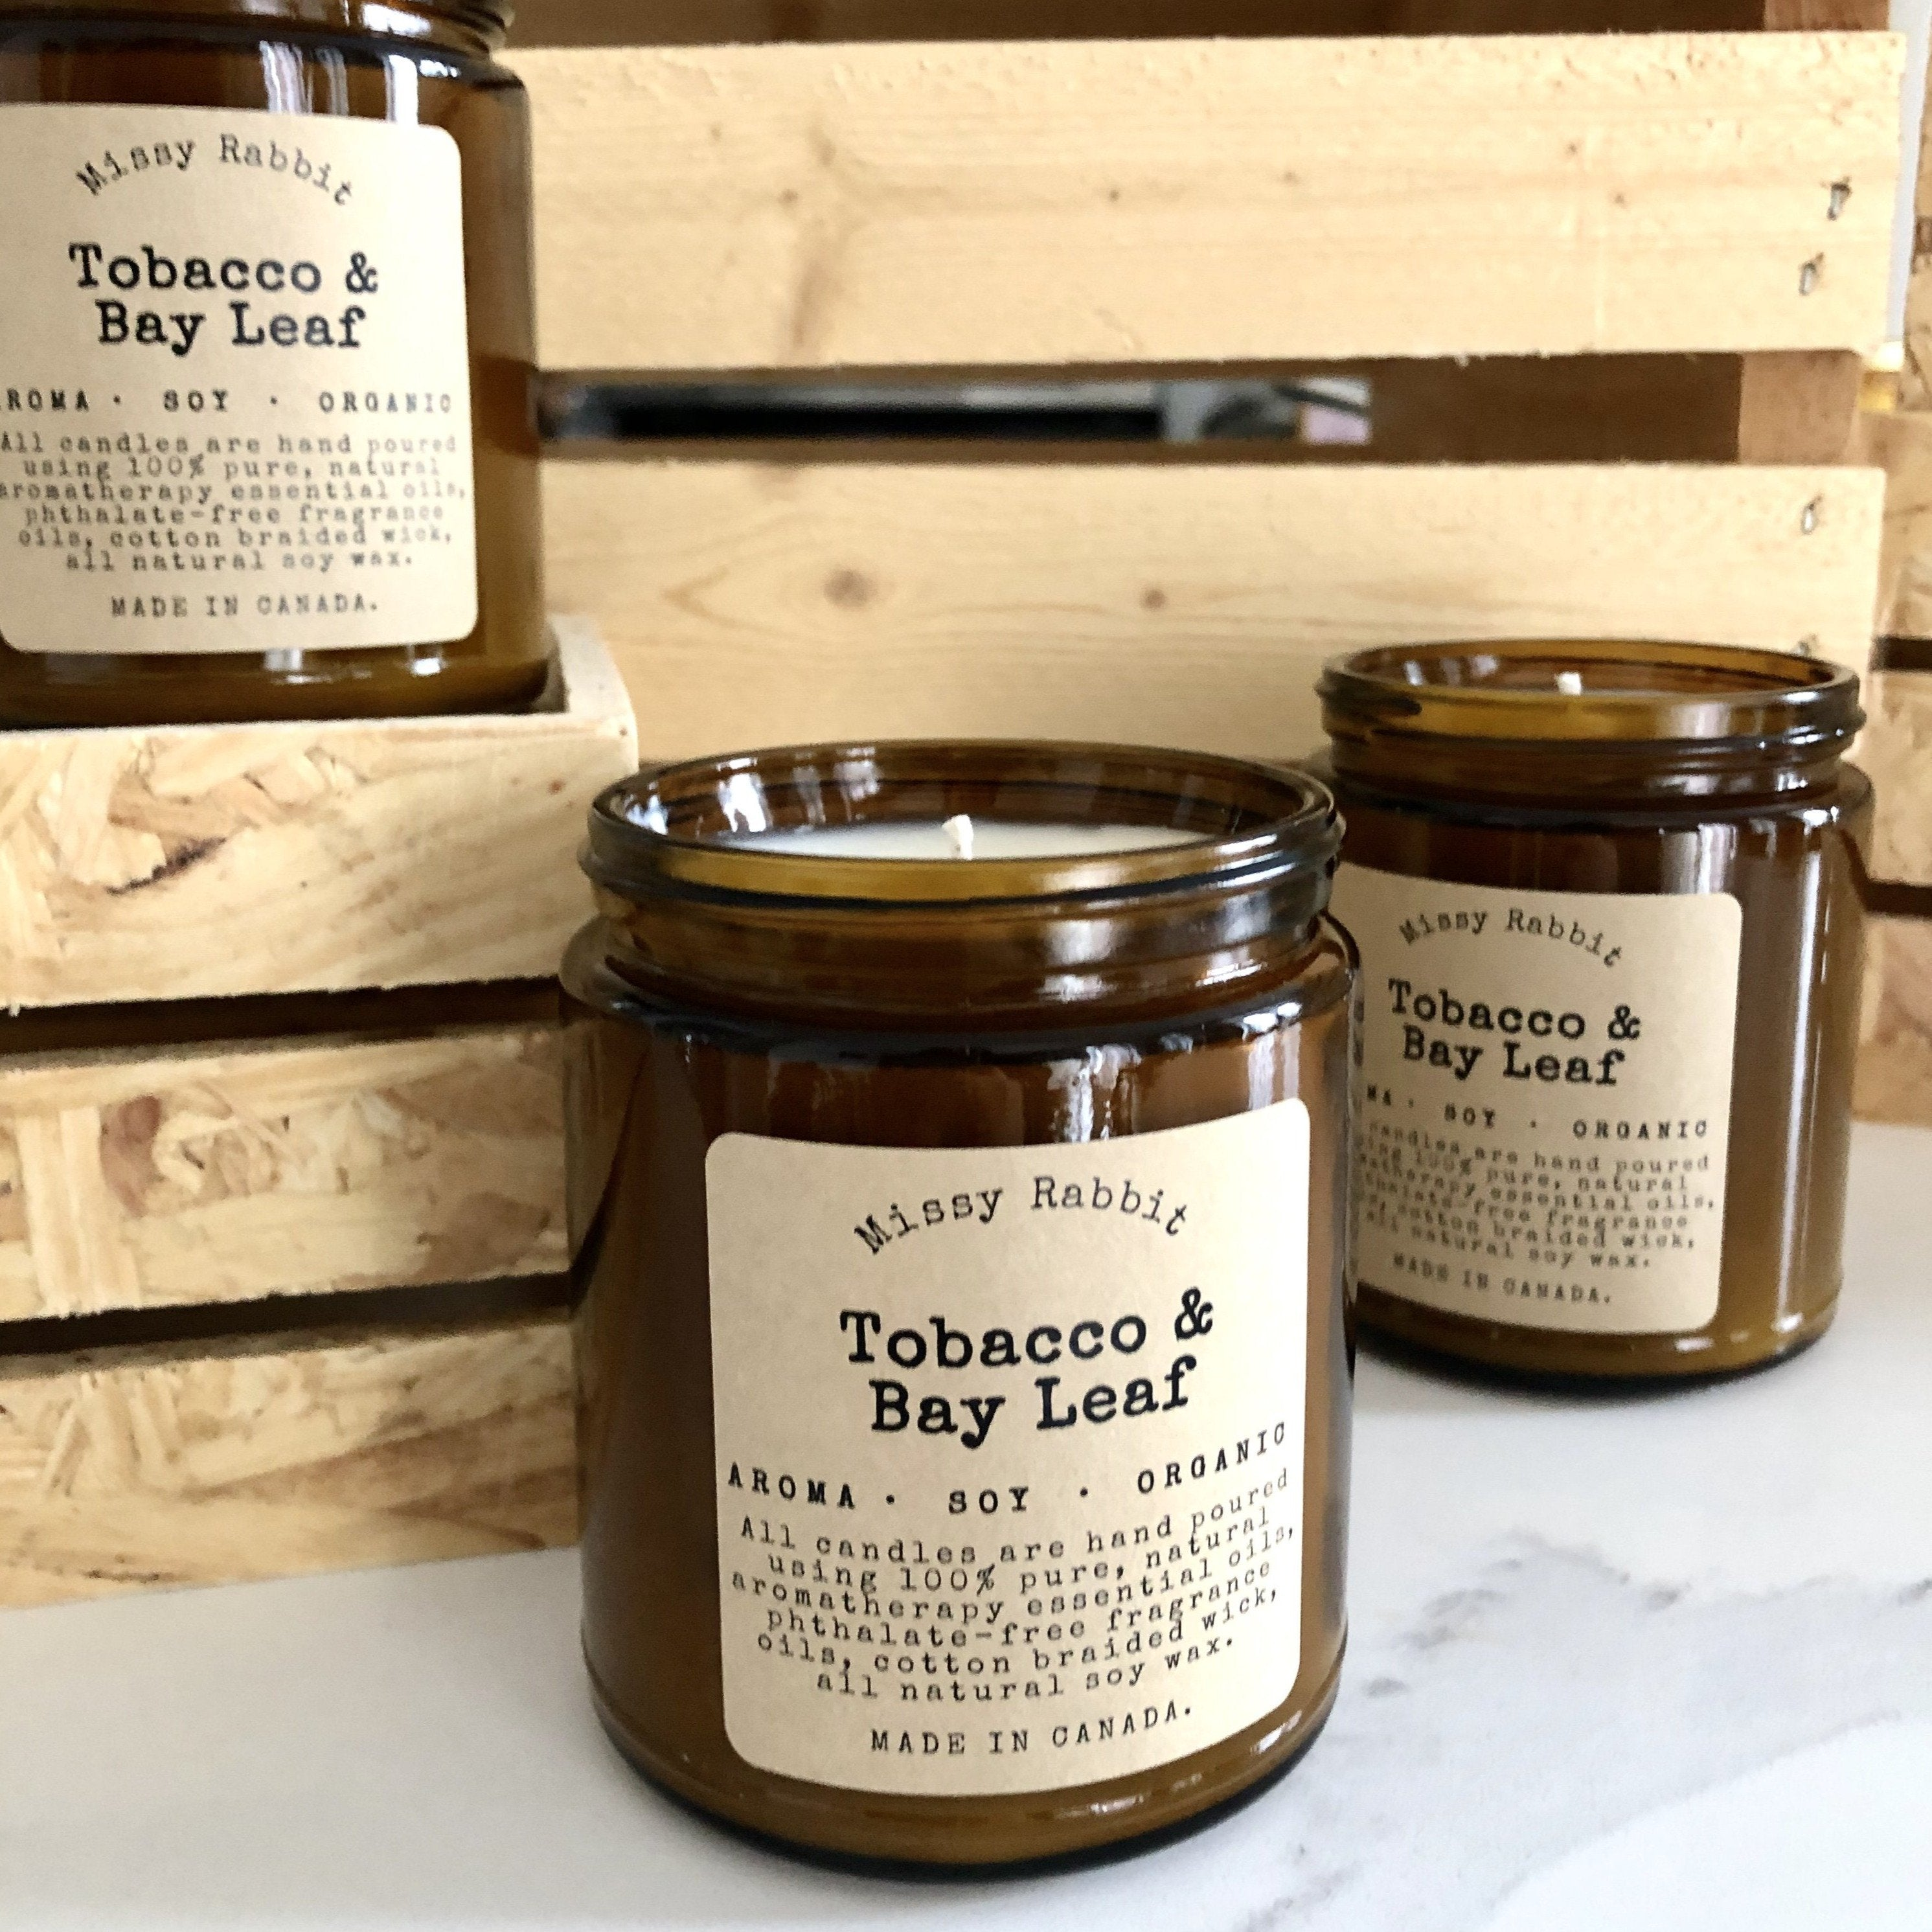 Tobacco + Bay Leaf Handcrafted Soy Candle